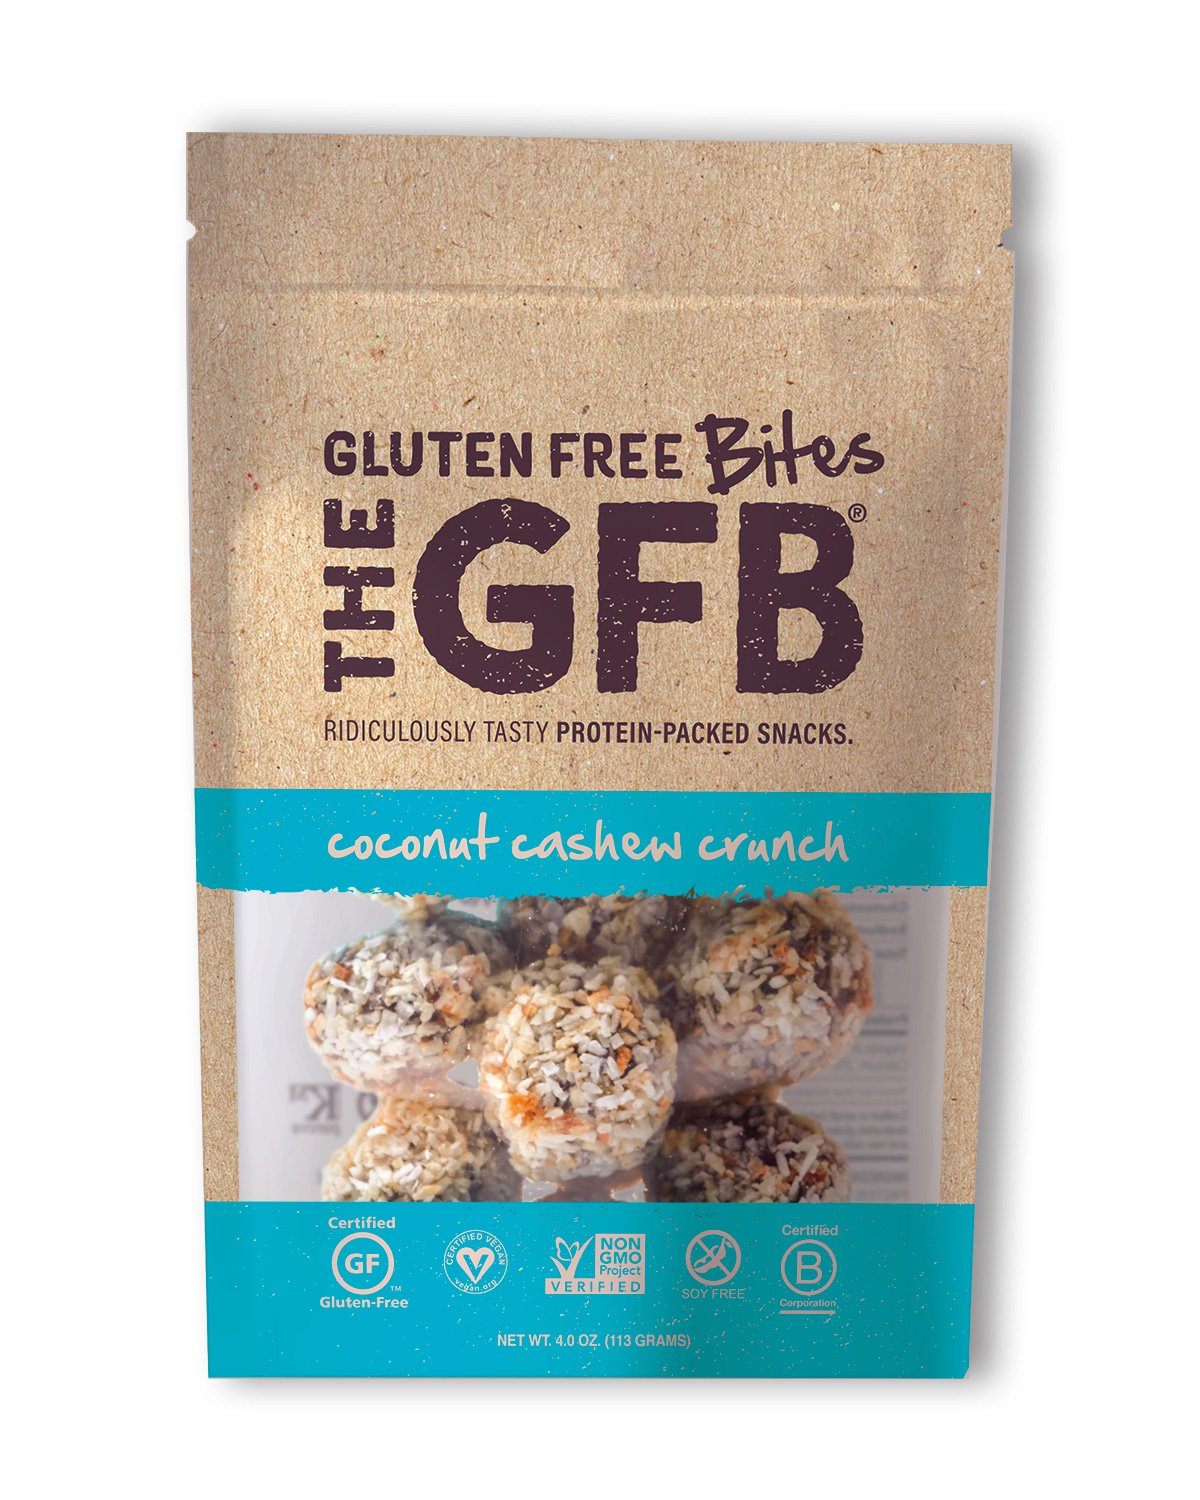 The GFB Gluten Free, Non GMO High Protein Bites, Coconut Cashew Crunch, 4 Ounce